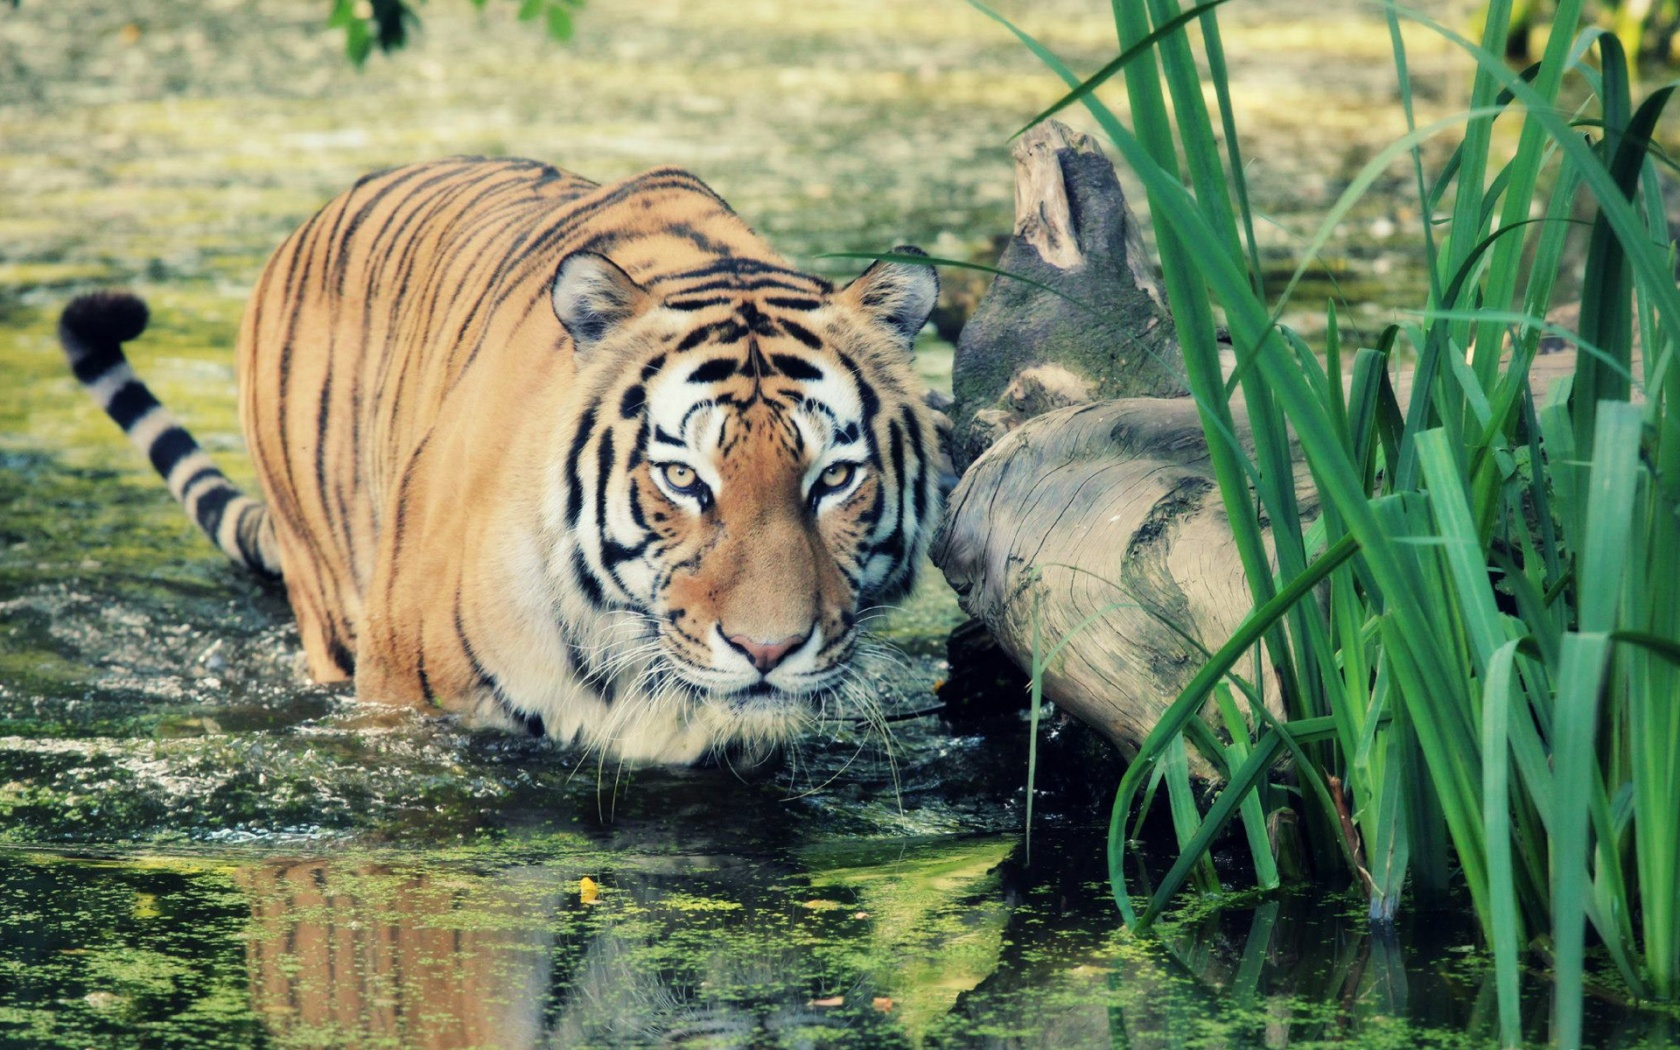 wild tiger wallpapers in jpg format for free download